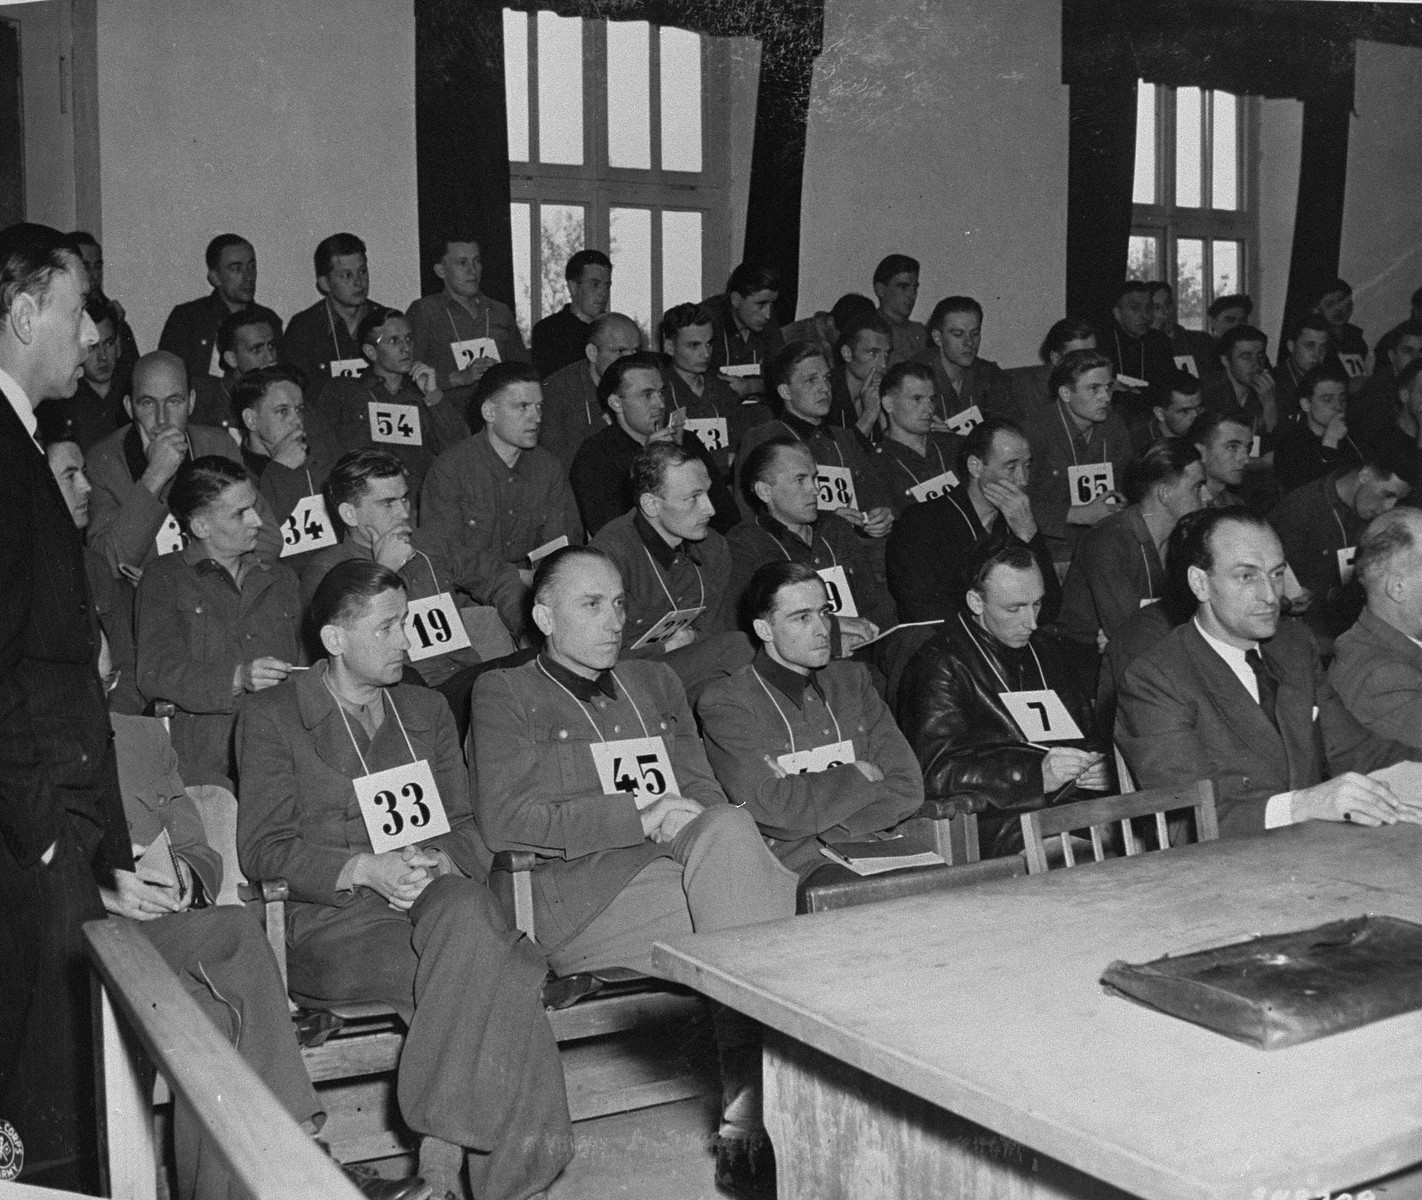 Defendants former SS General Fritz Kraemer (#33), former SS General Hermann Priess (#45), and former SS Colonel Peiper (third from the left in the first row) listen to Colonel William Everett give the defense's closing statement at the trial of 74 SS men charged with perpetrating the Malmedy atrocity.